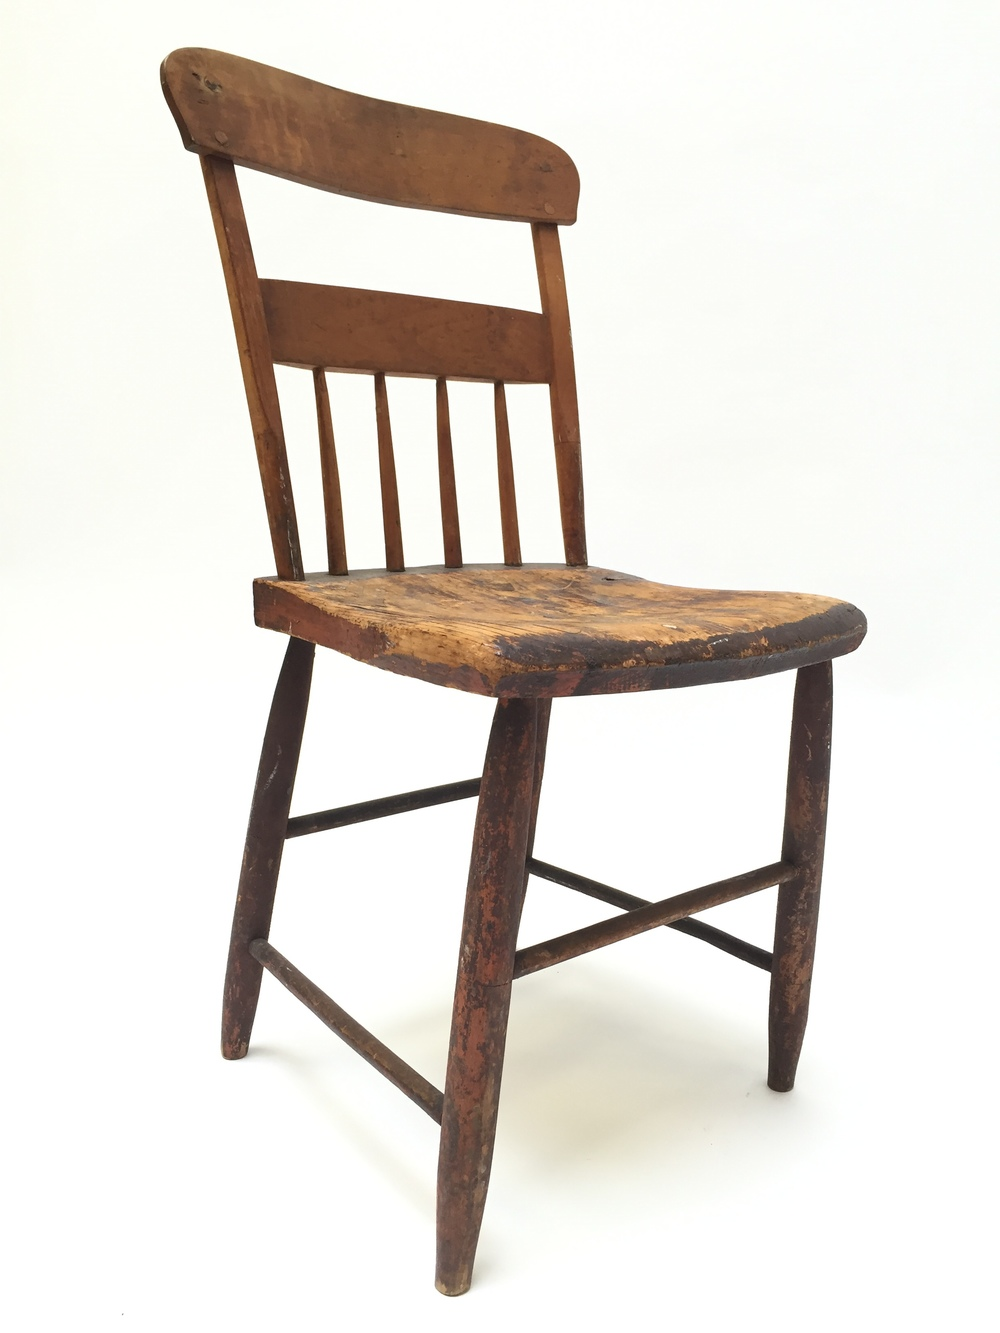 DISTRESSED WOODEN CHAIR